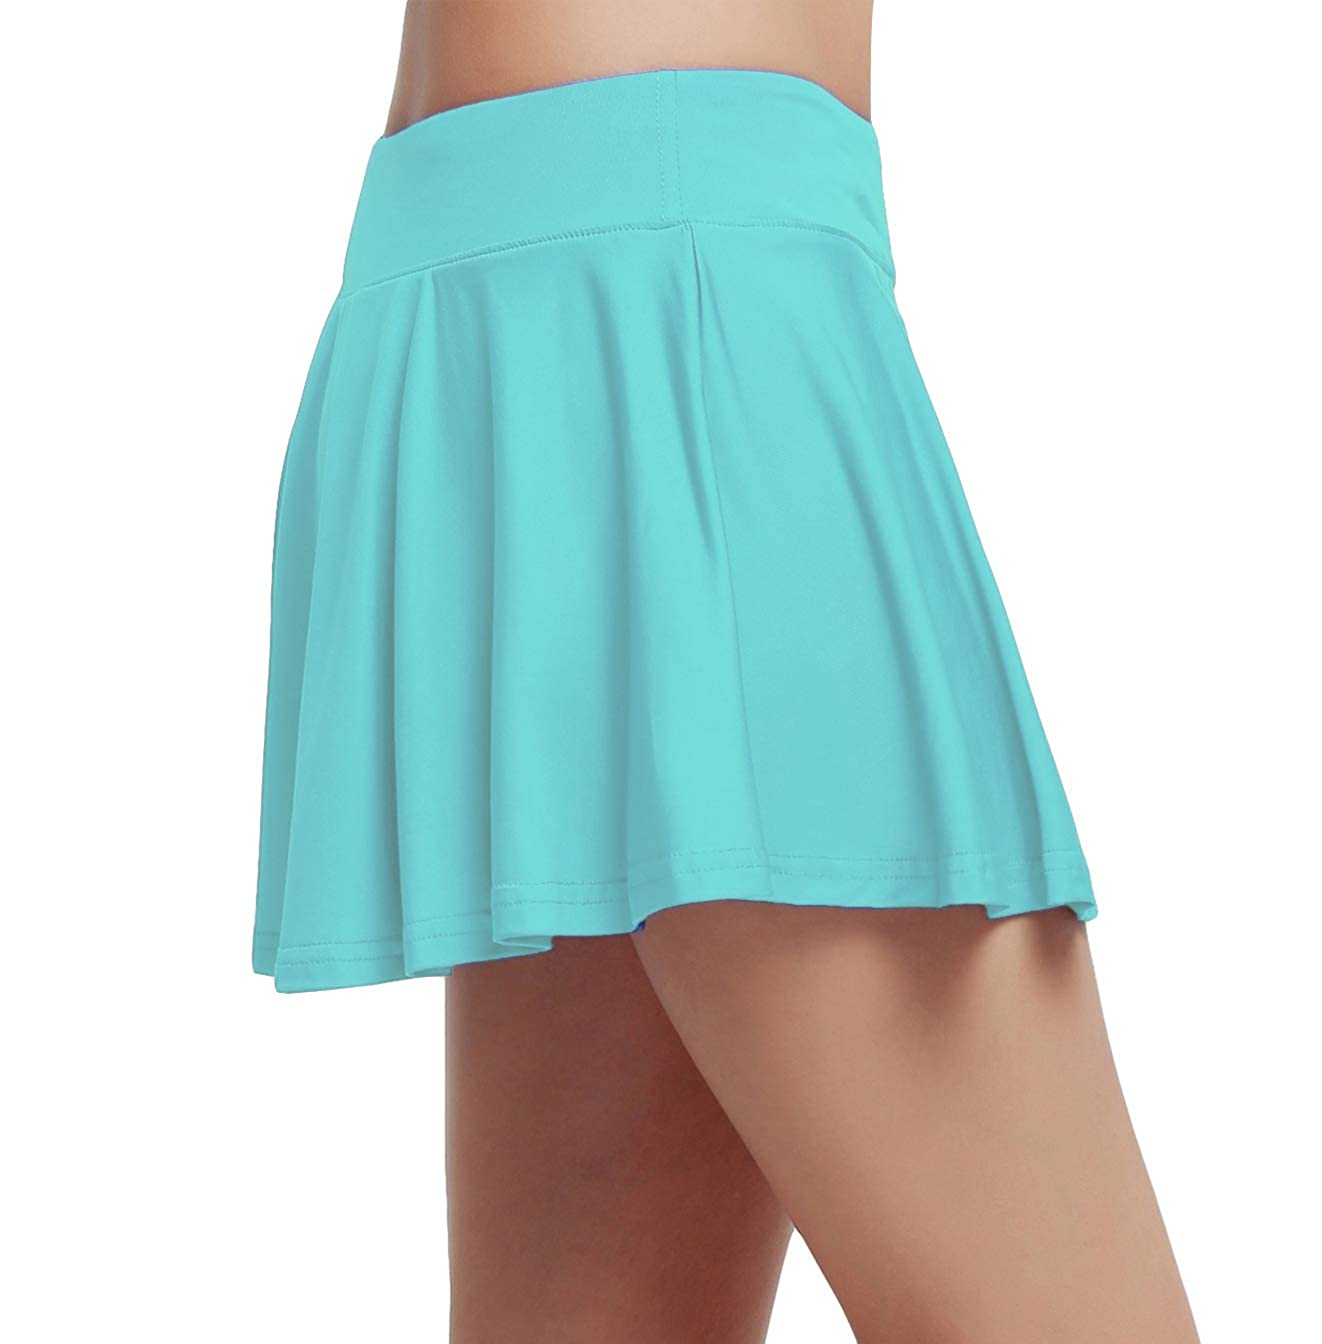 honour fashion Women's Gym Stretchy Skorts with Underwear Covered wk02